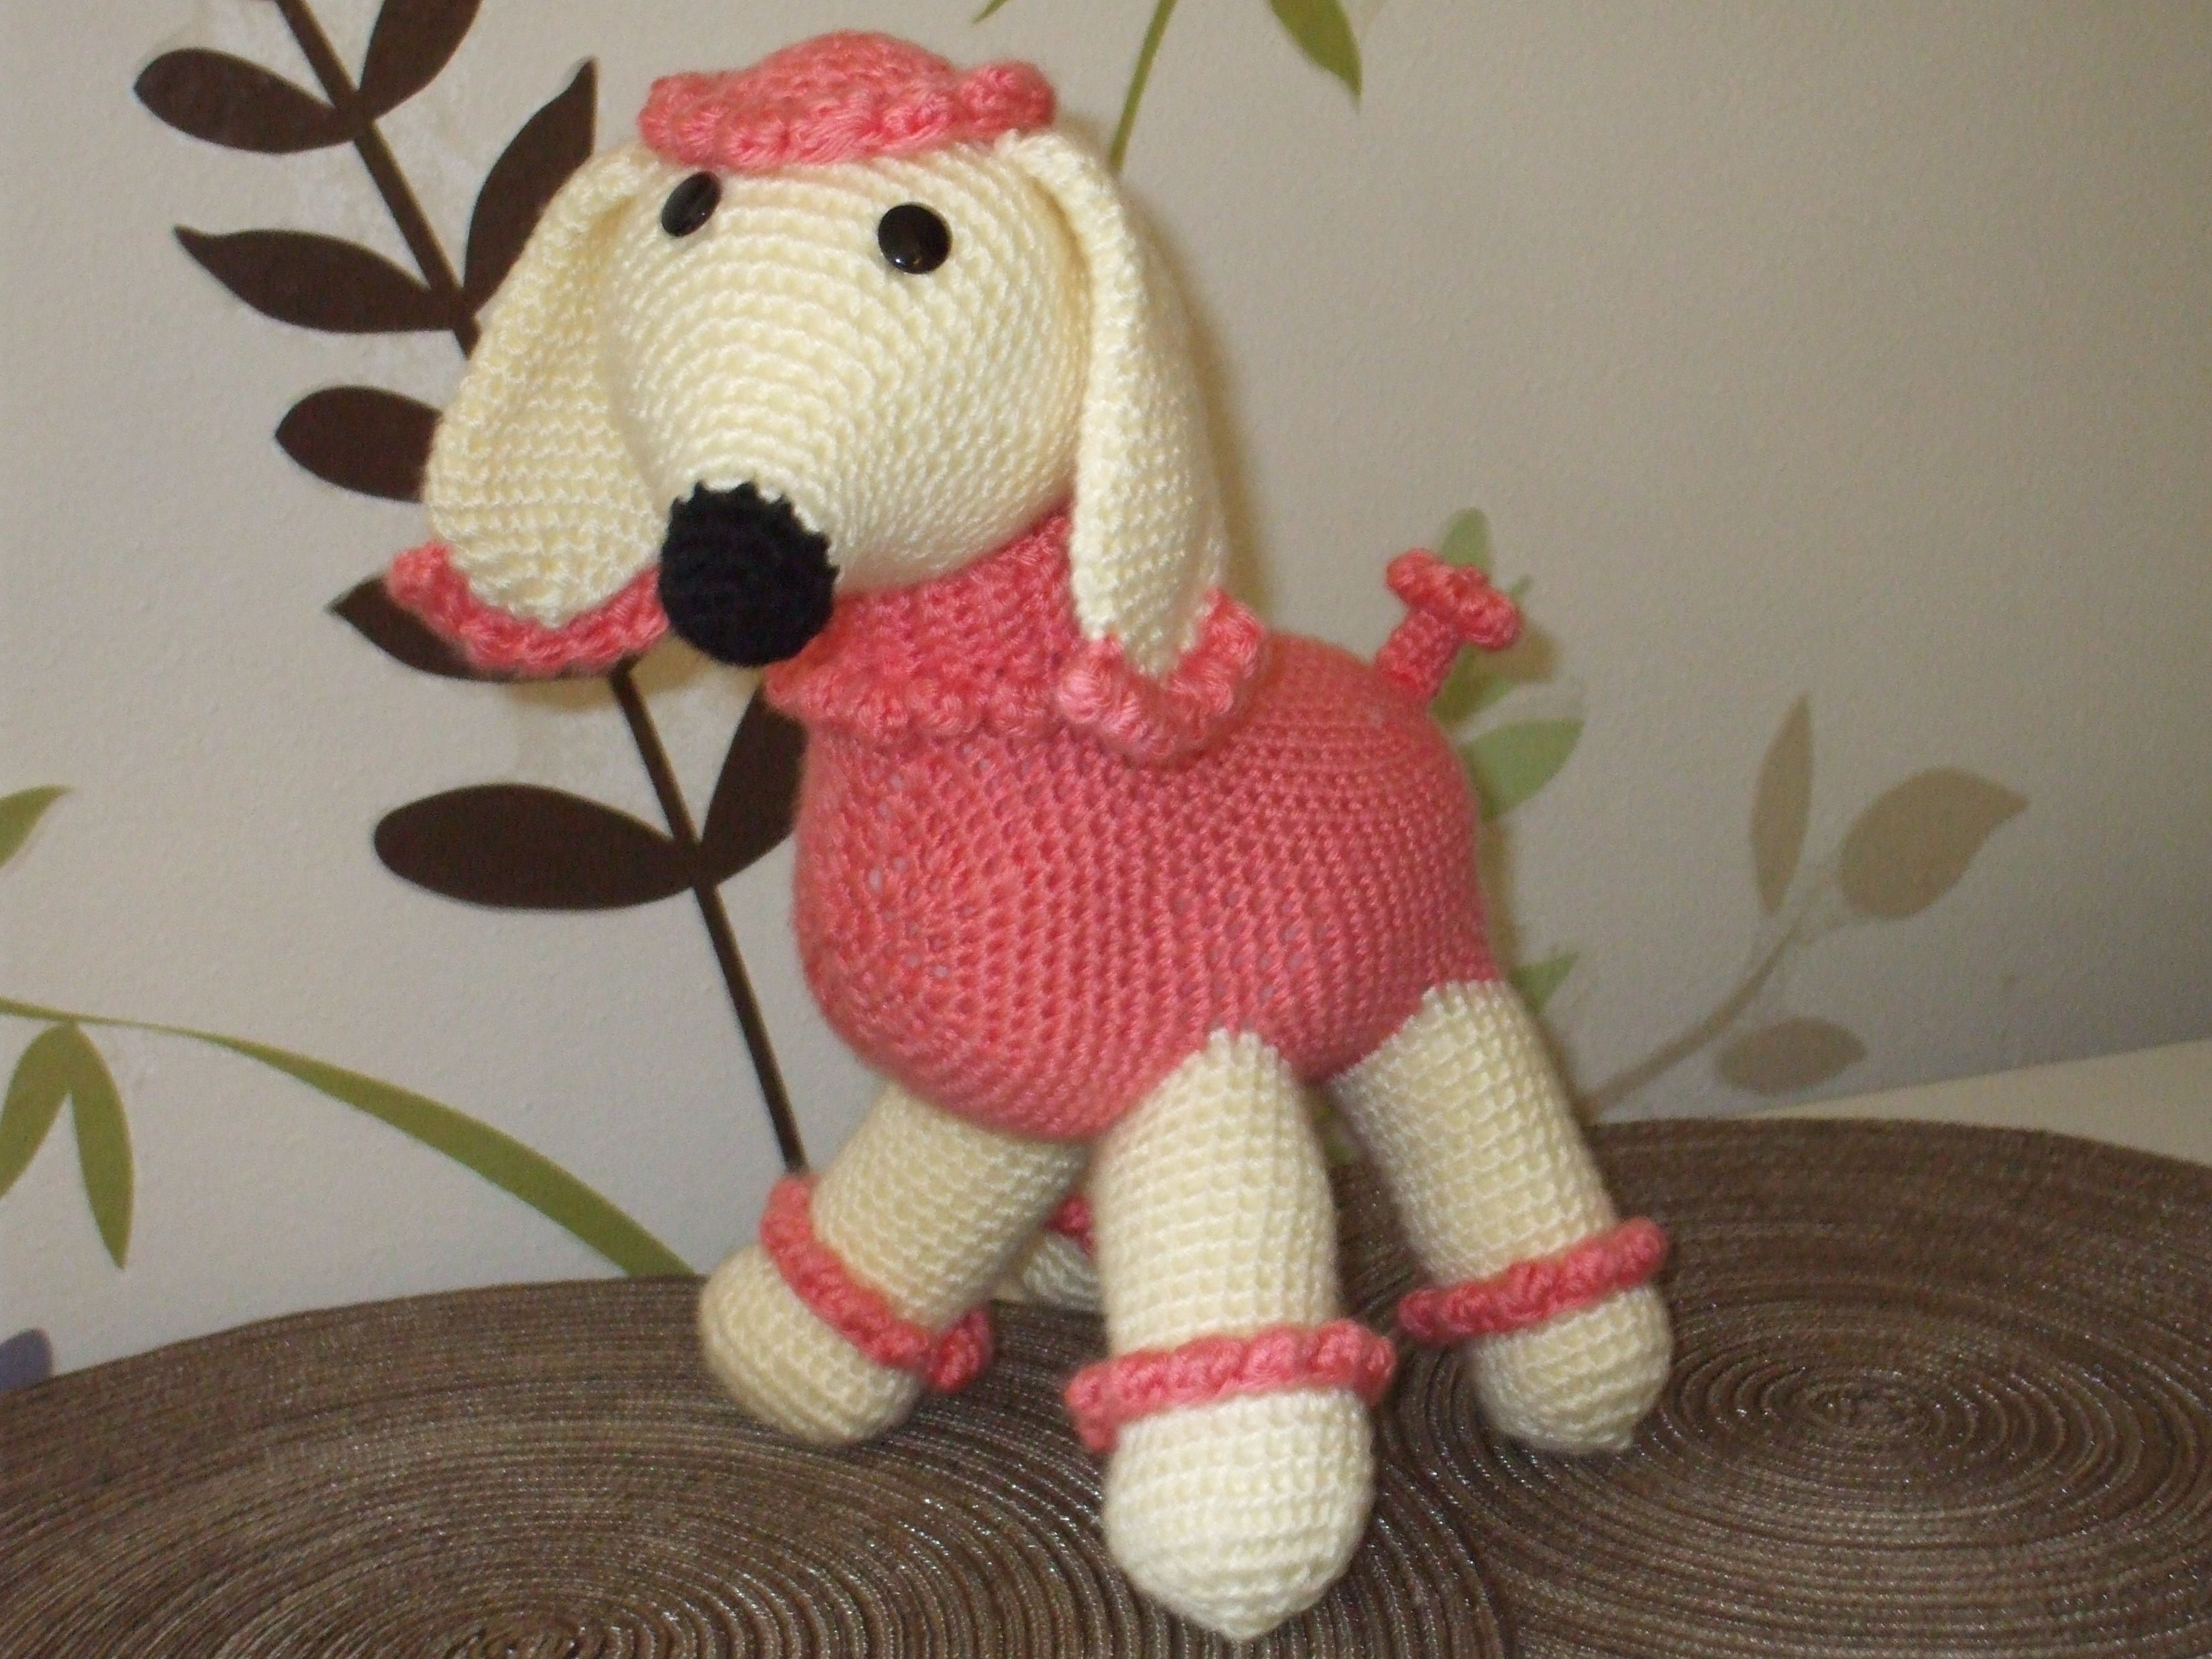 Penelope, the pink poodle. She was so much fun to make.